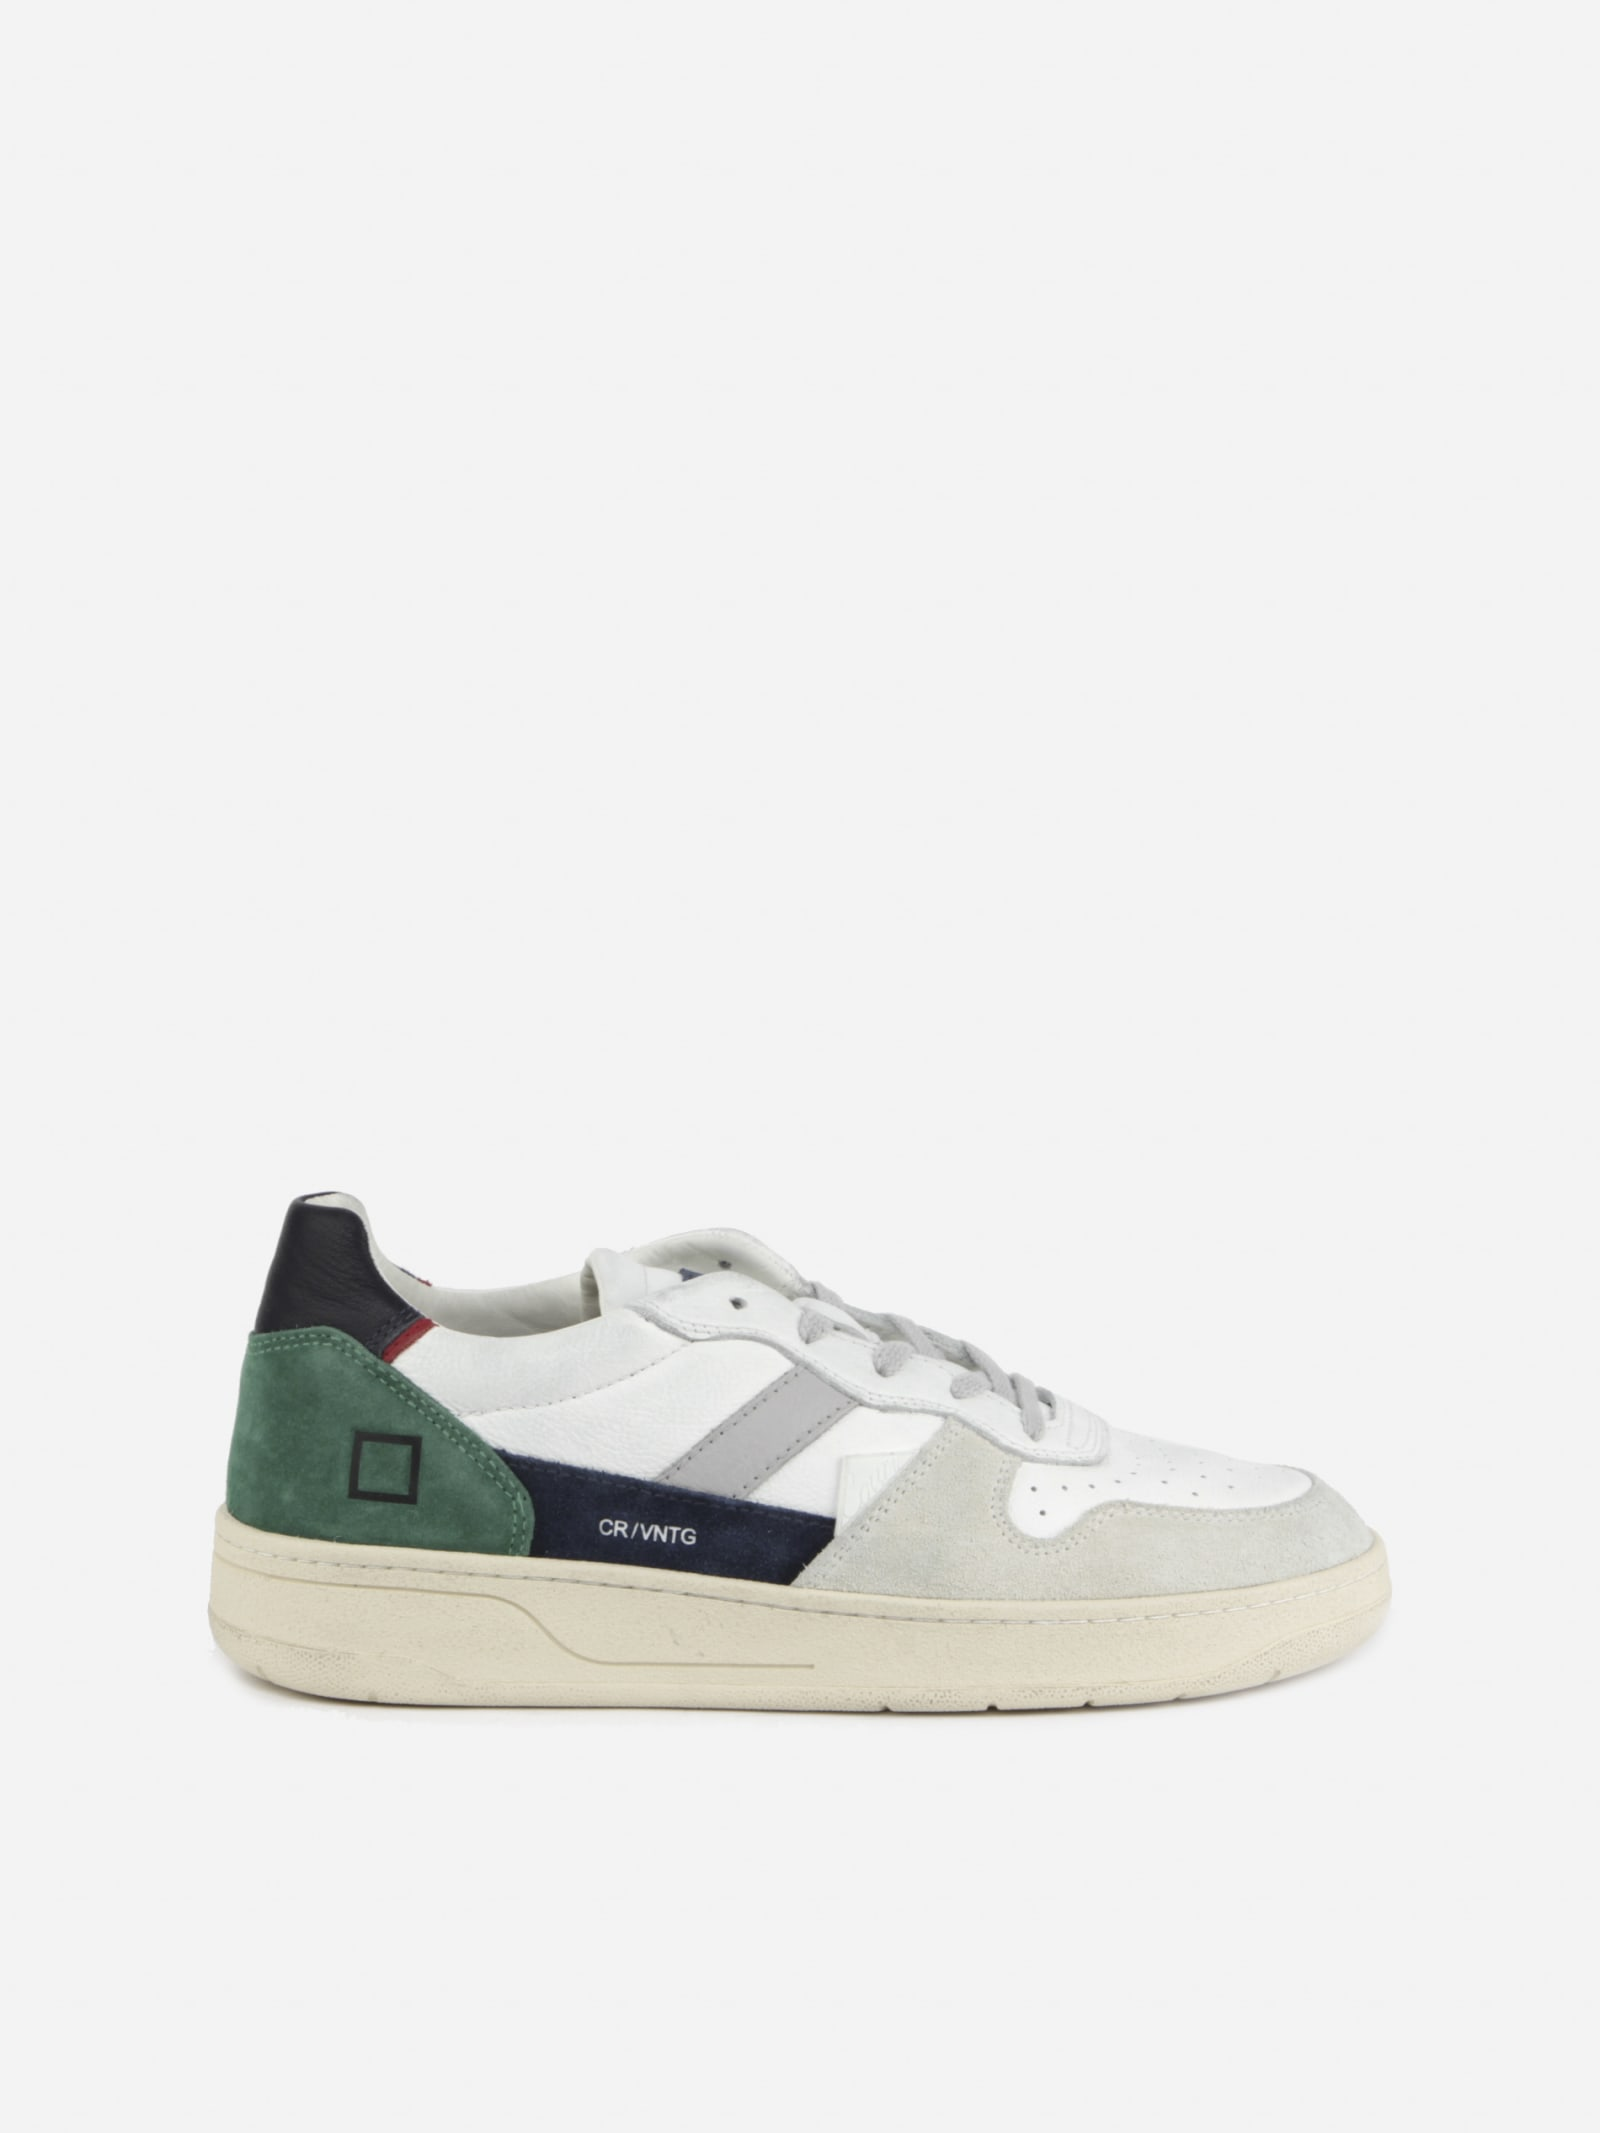 D.a.t.e. VINTAGE EFFECT COURT SNEAKERS WITH SUEDE INSERTS